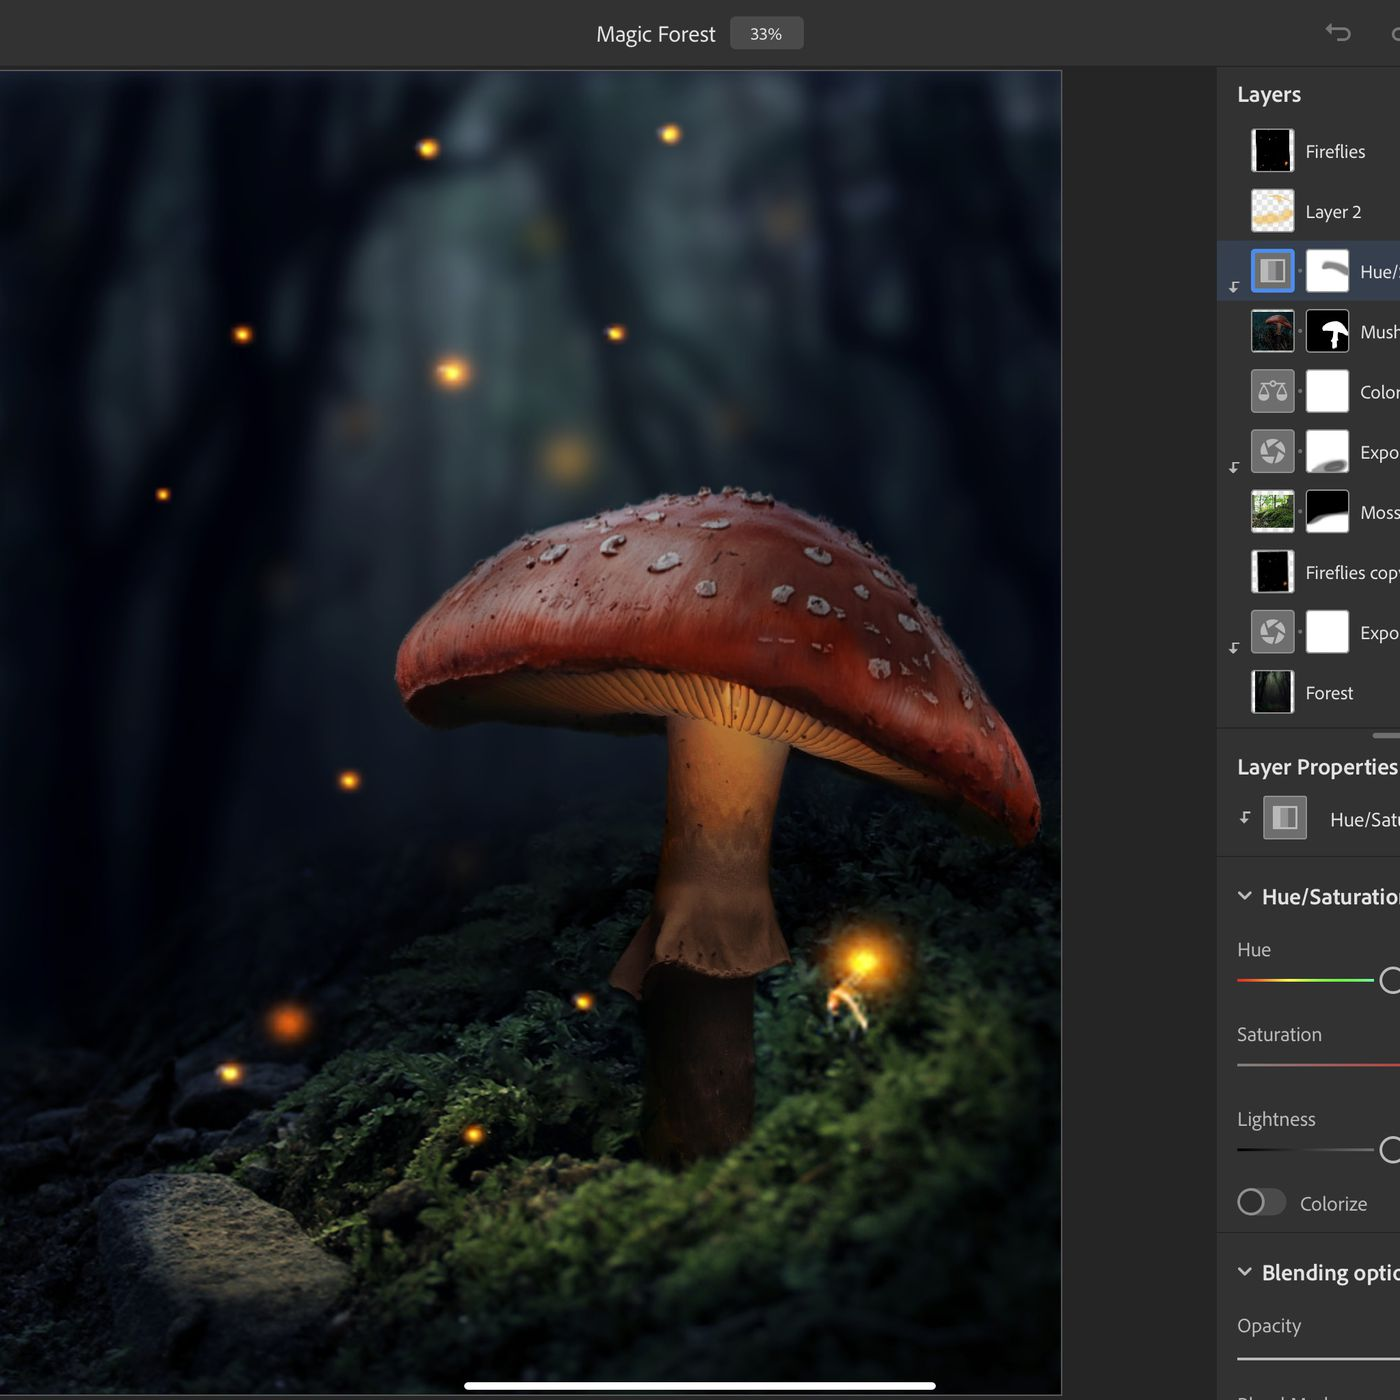 Adobe Deals With Painful Early Reviews Of Photoshop For Ipad The Verge Adobe photoshop software is the industry standard in digital imaging. photoshop for ipad